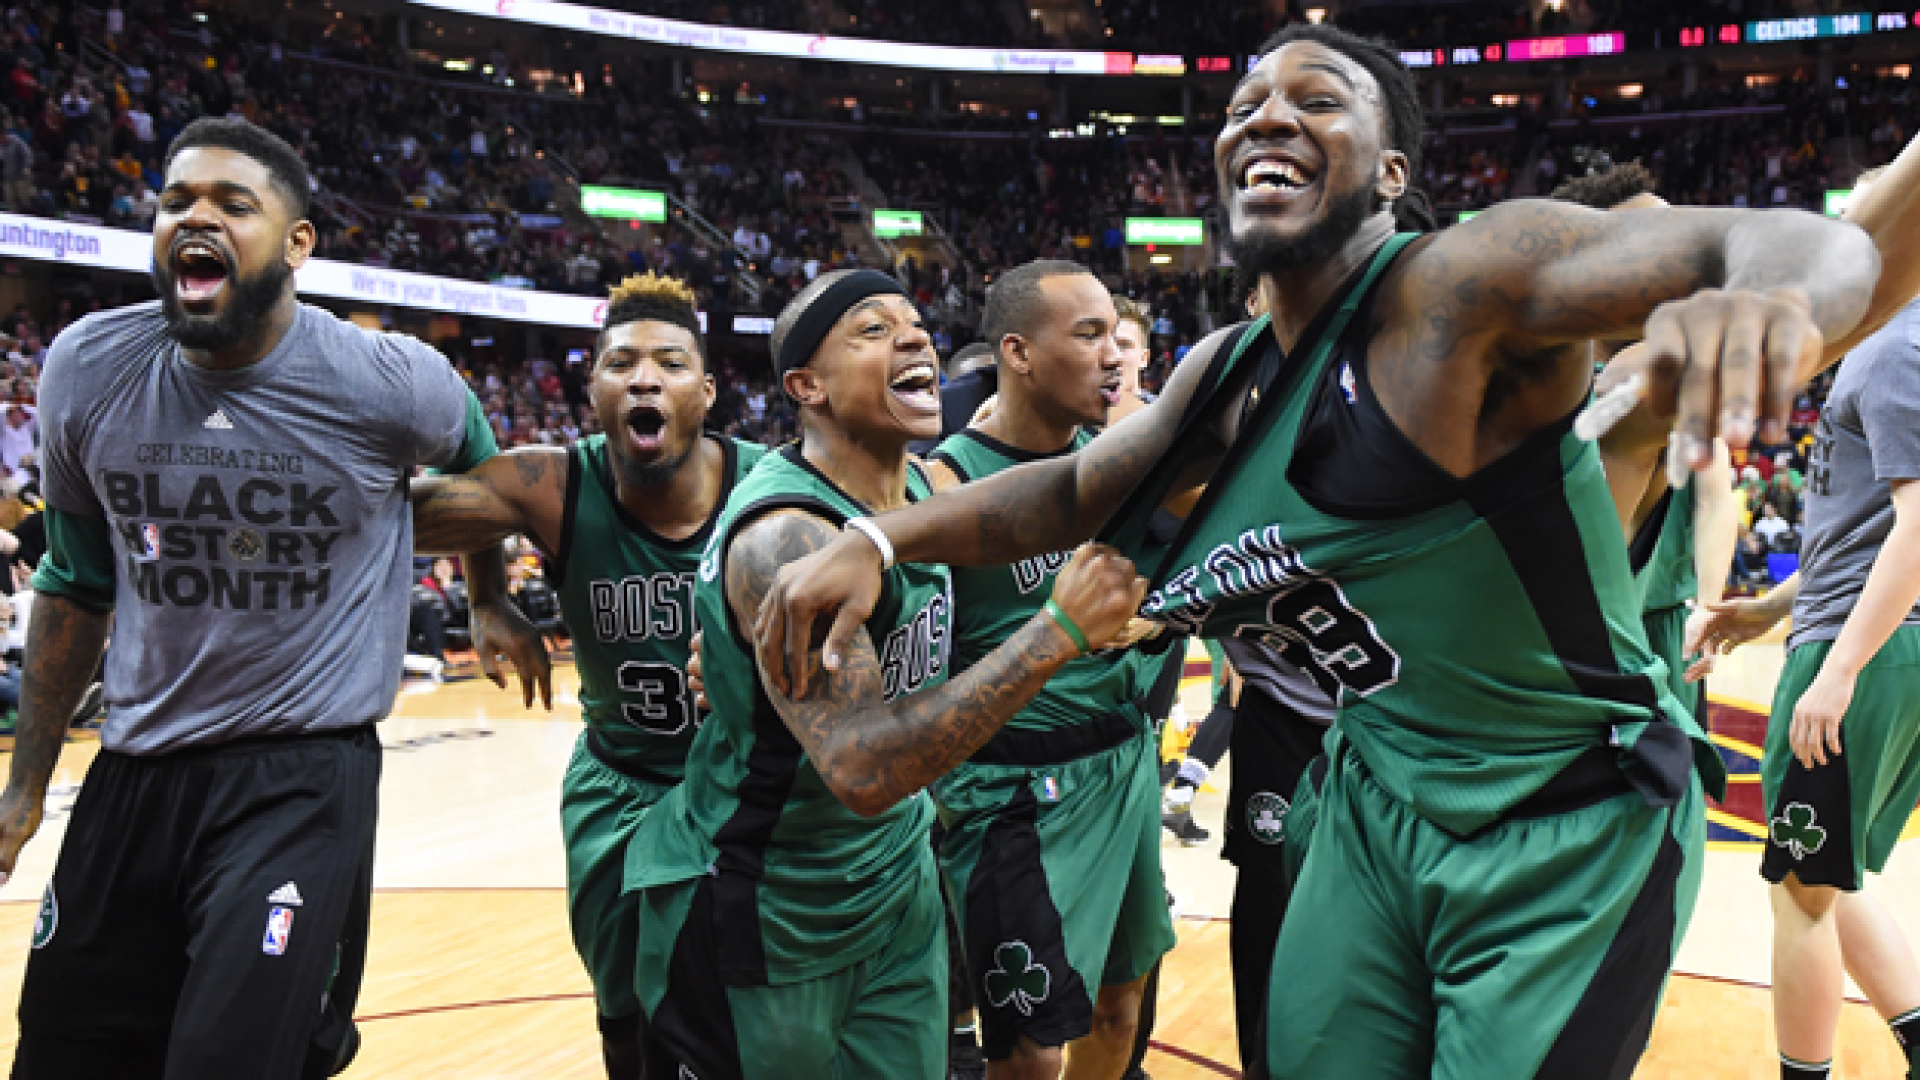 Amir Johnson, Marcus Smart, Isaiah Thomas, Avery Bradley et Jae Crowder